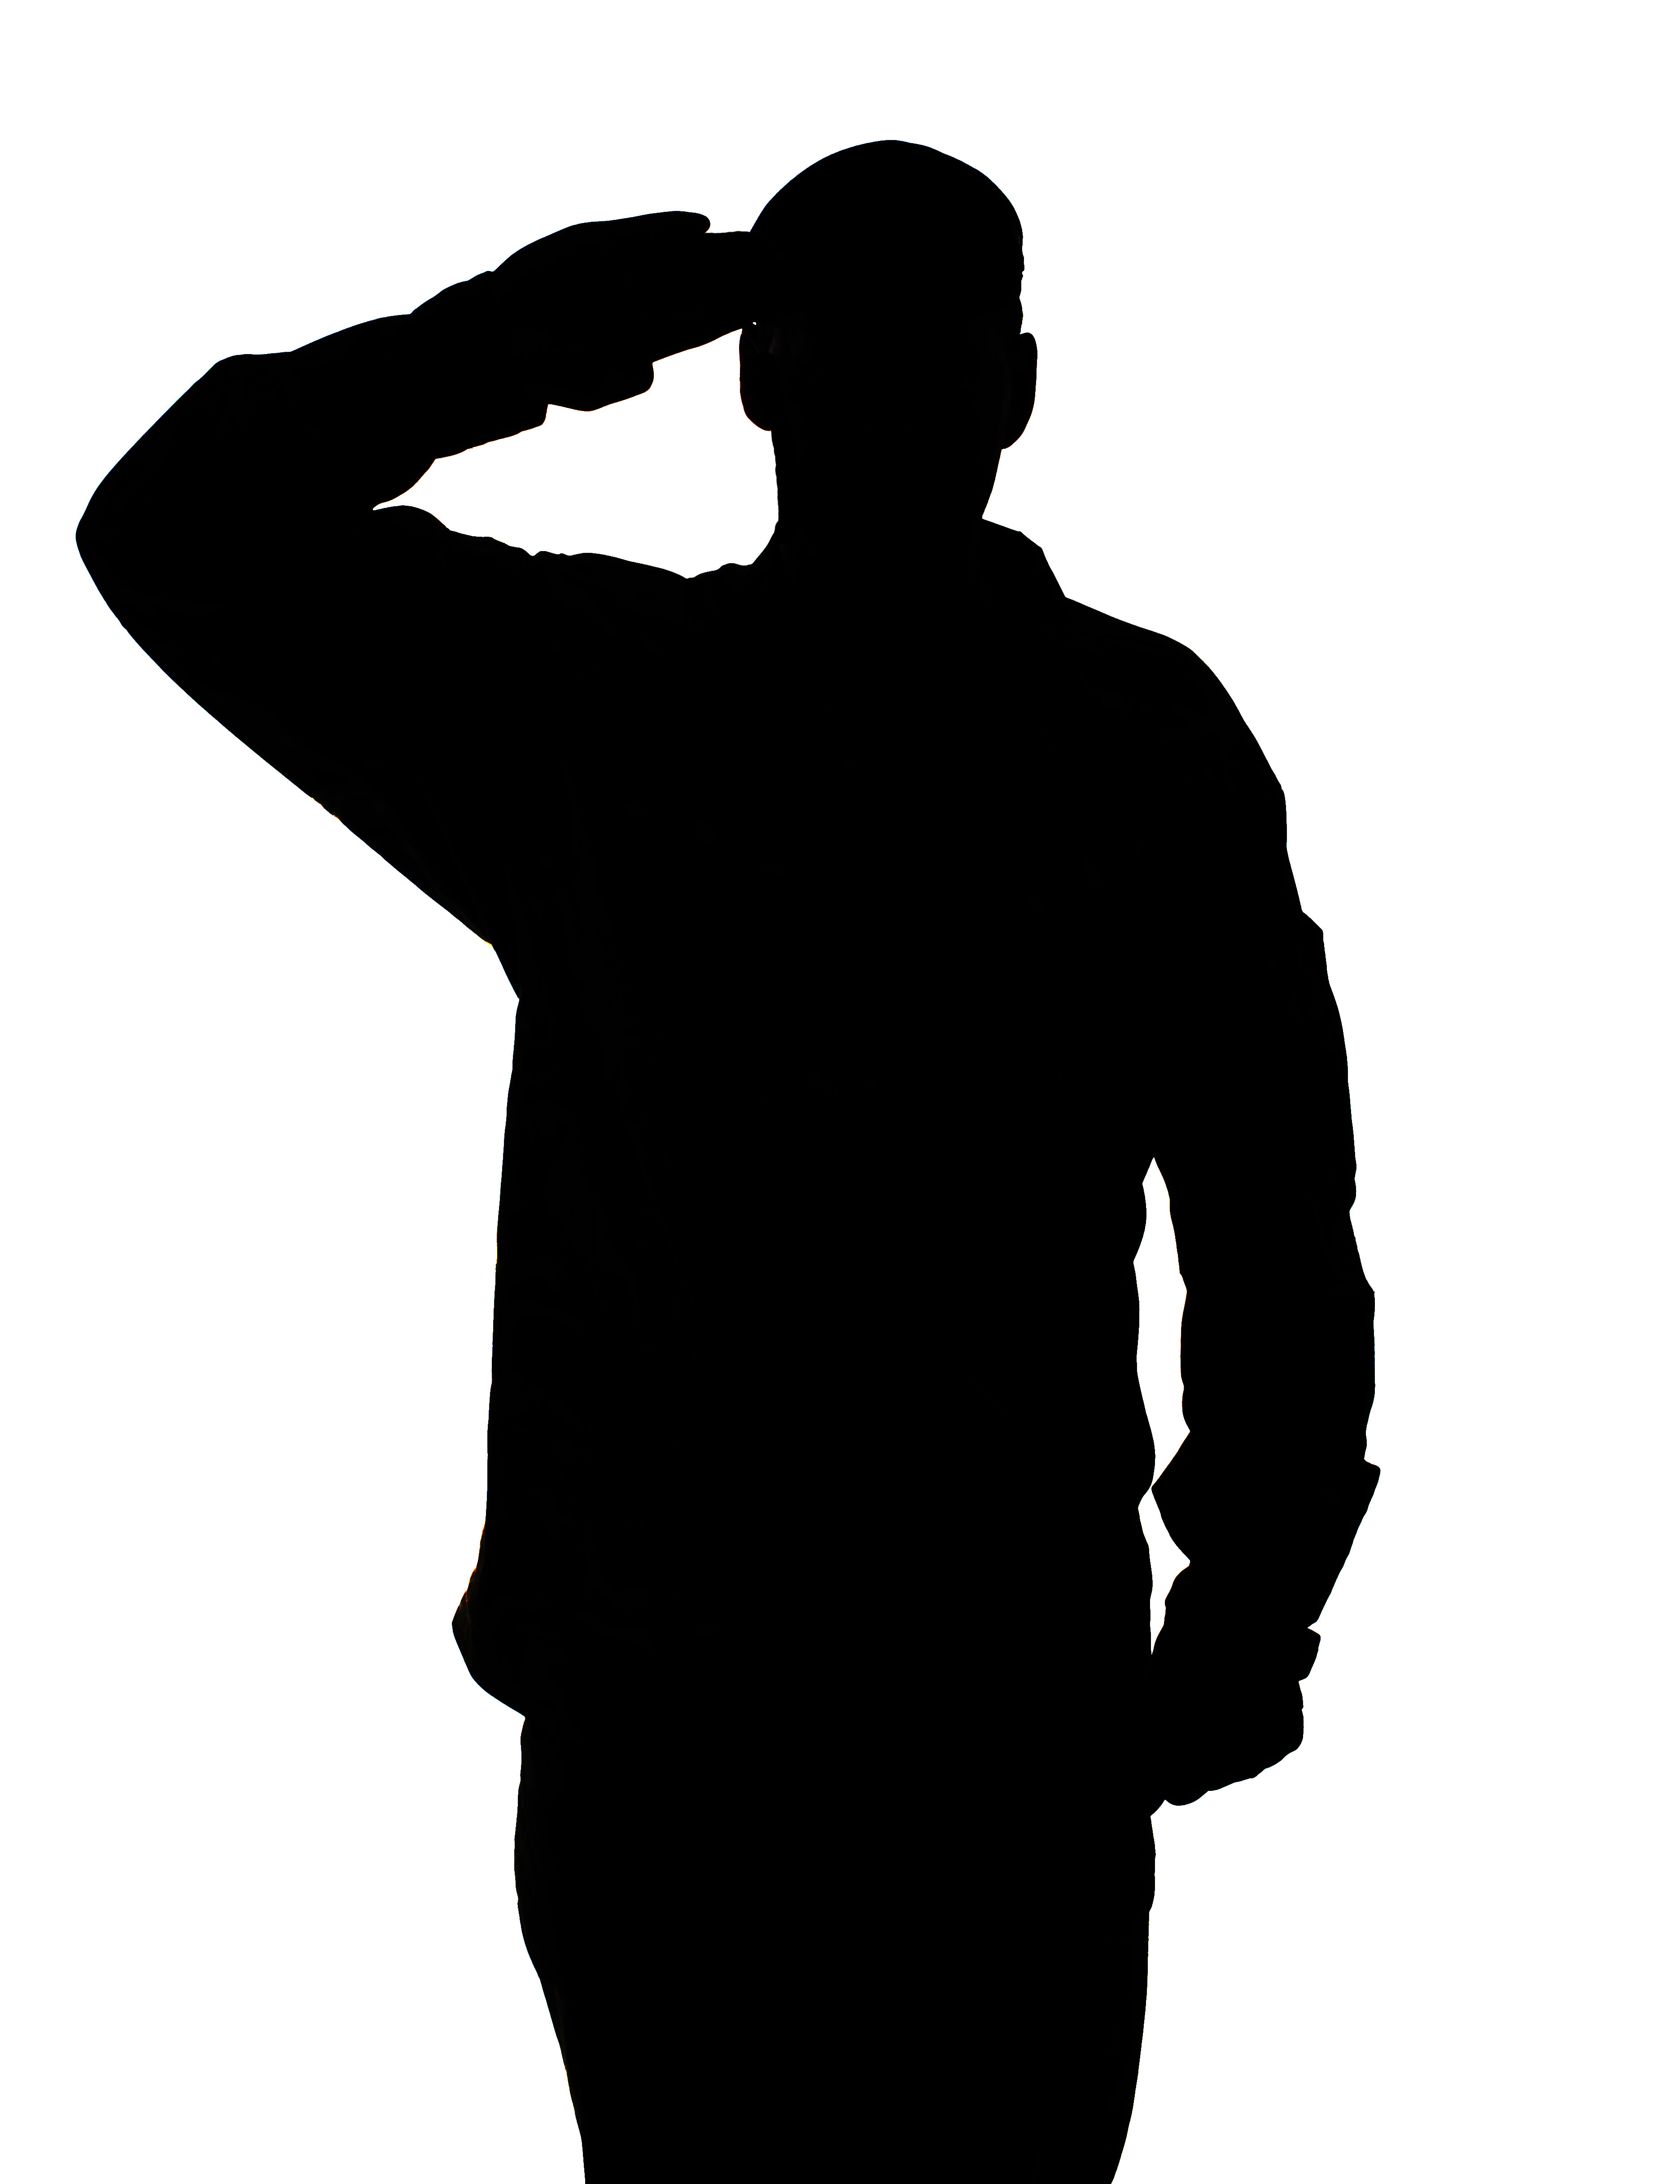 Military Silhouette Clipart - Clipart Kid